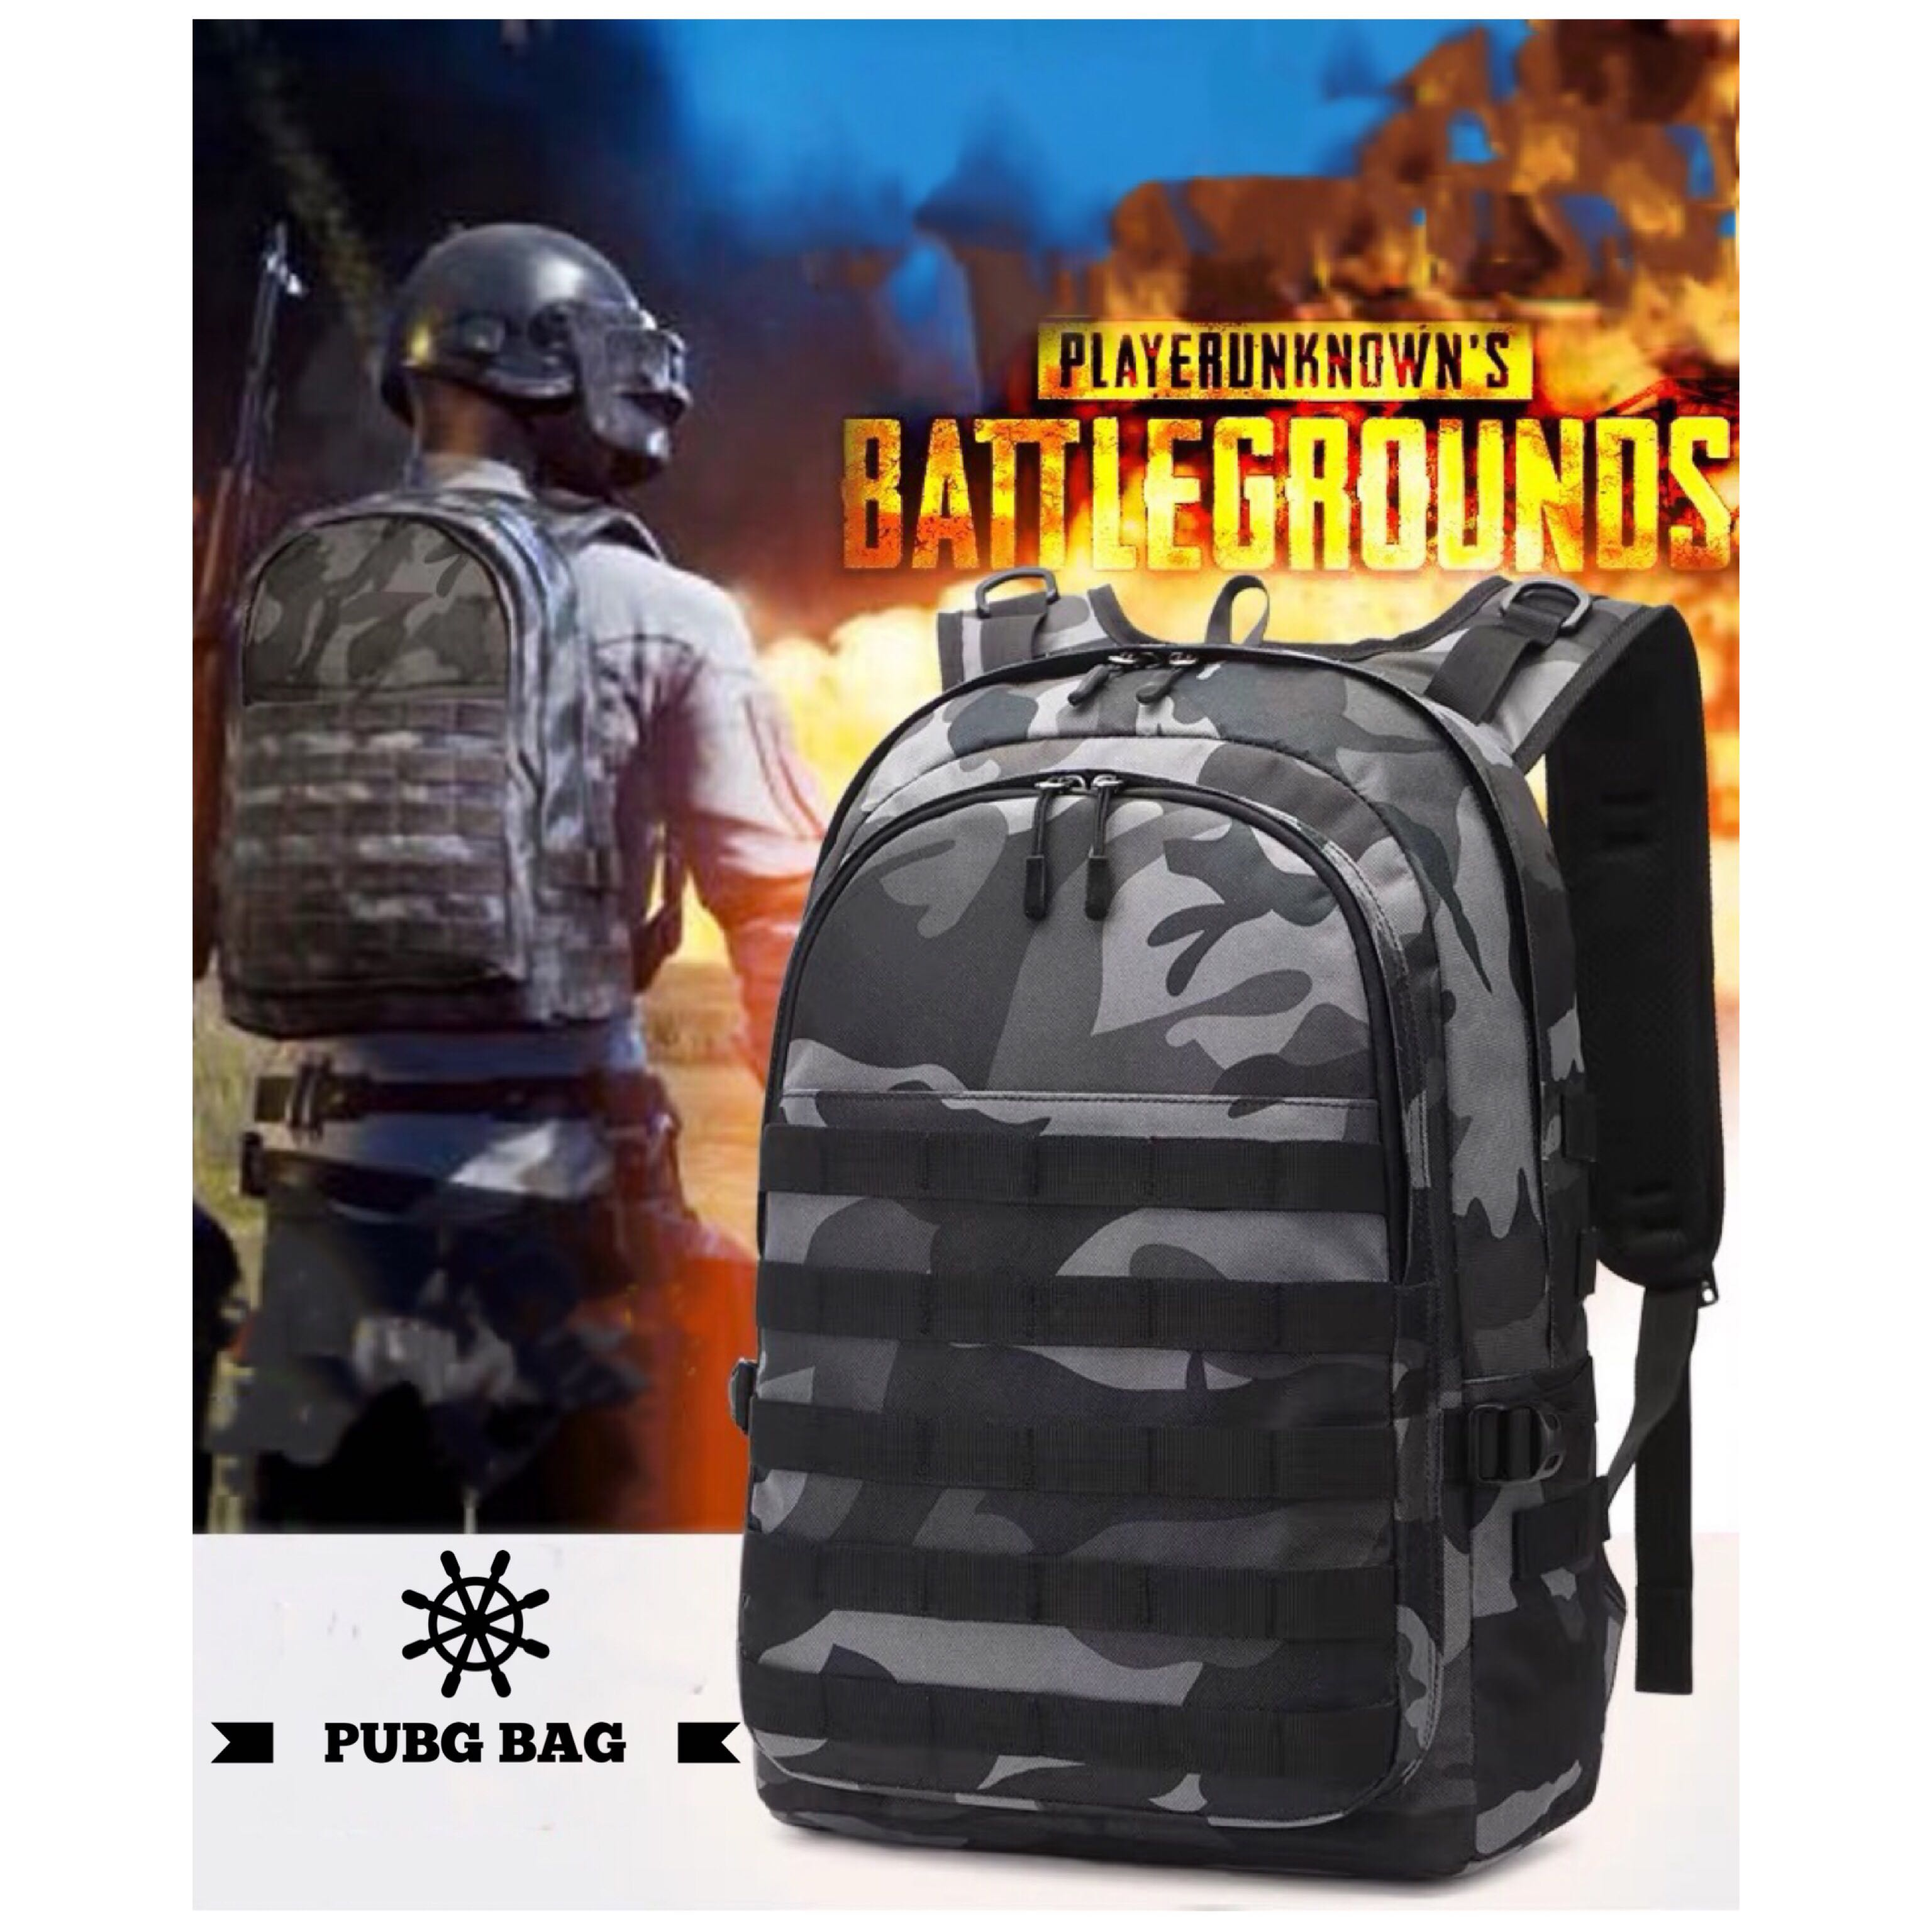 New Pubg Bag Men S Fashion Bags Wallets Backpacks On Carousell